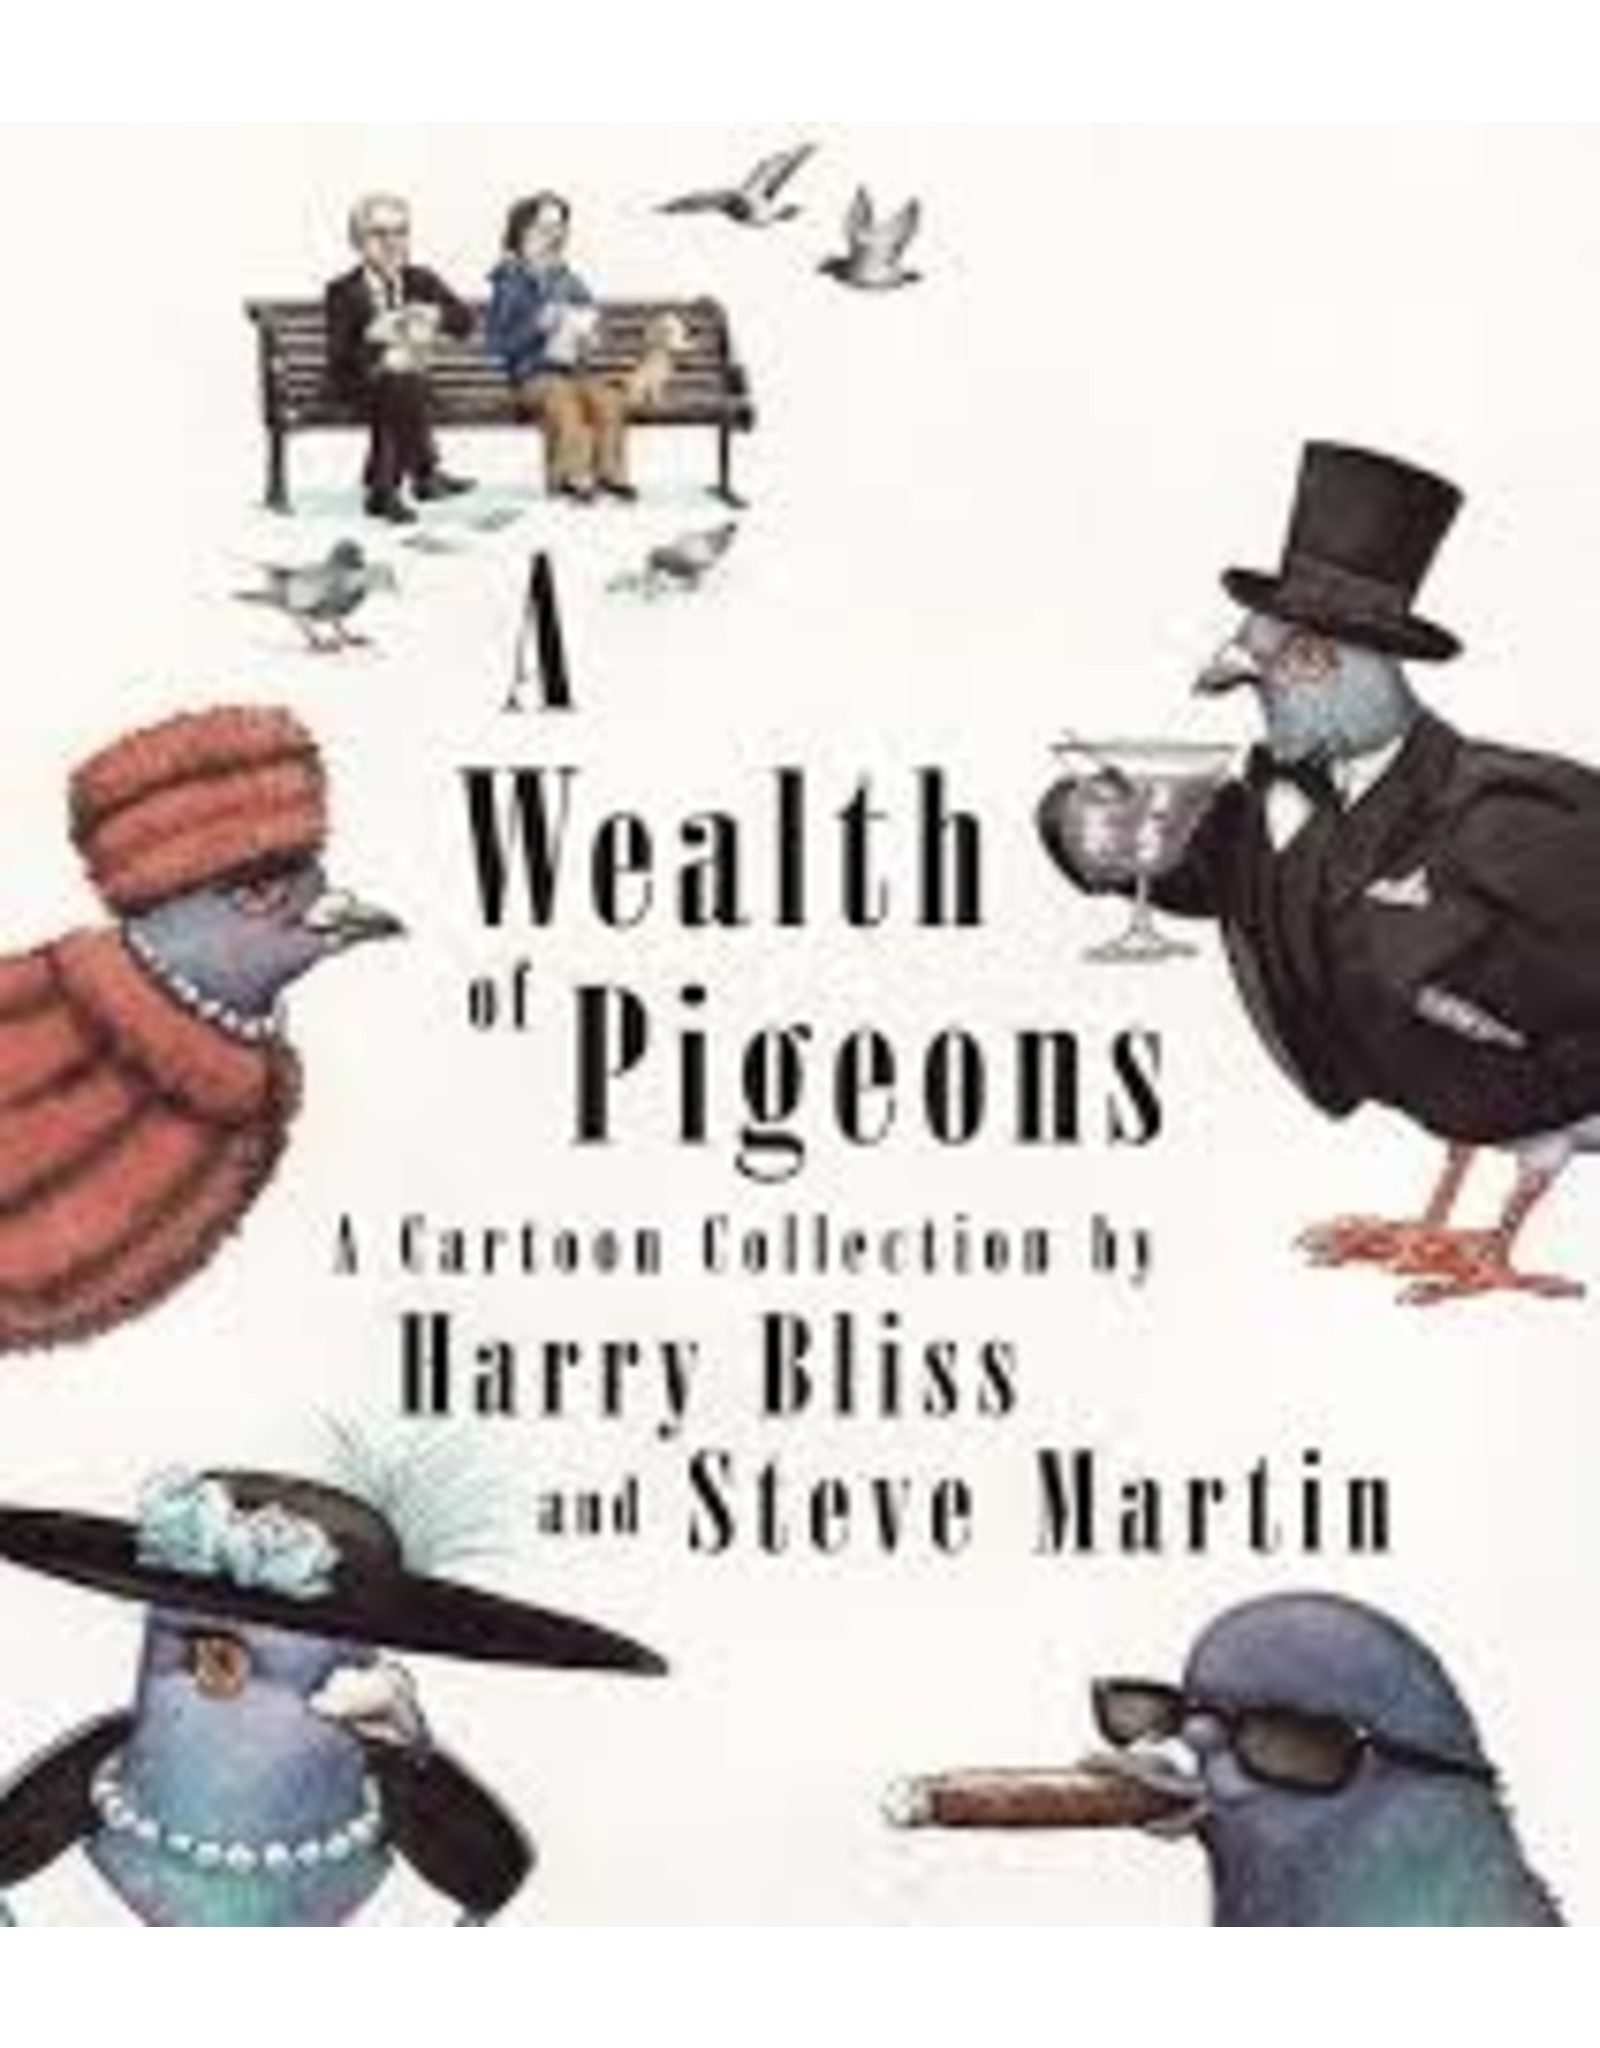 Books A Wealth of Pigeons: A Cartoon Collection by Harry Bliss and Steve Martin